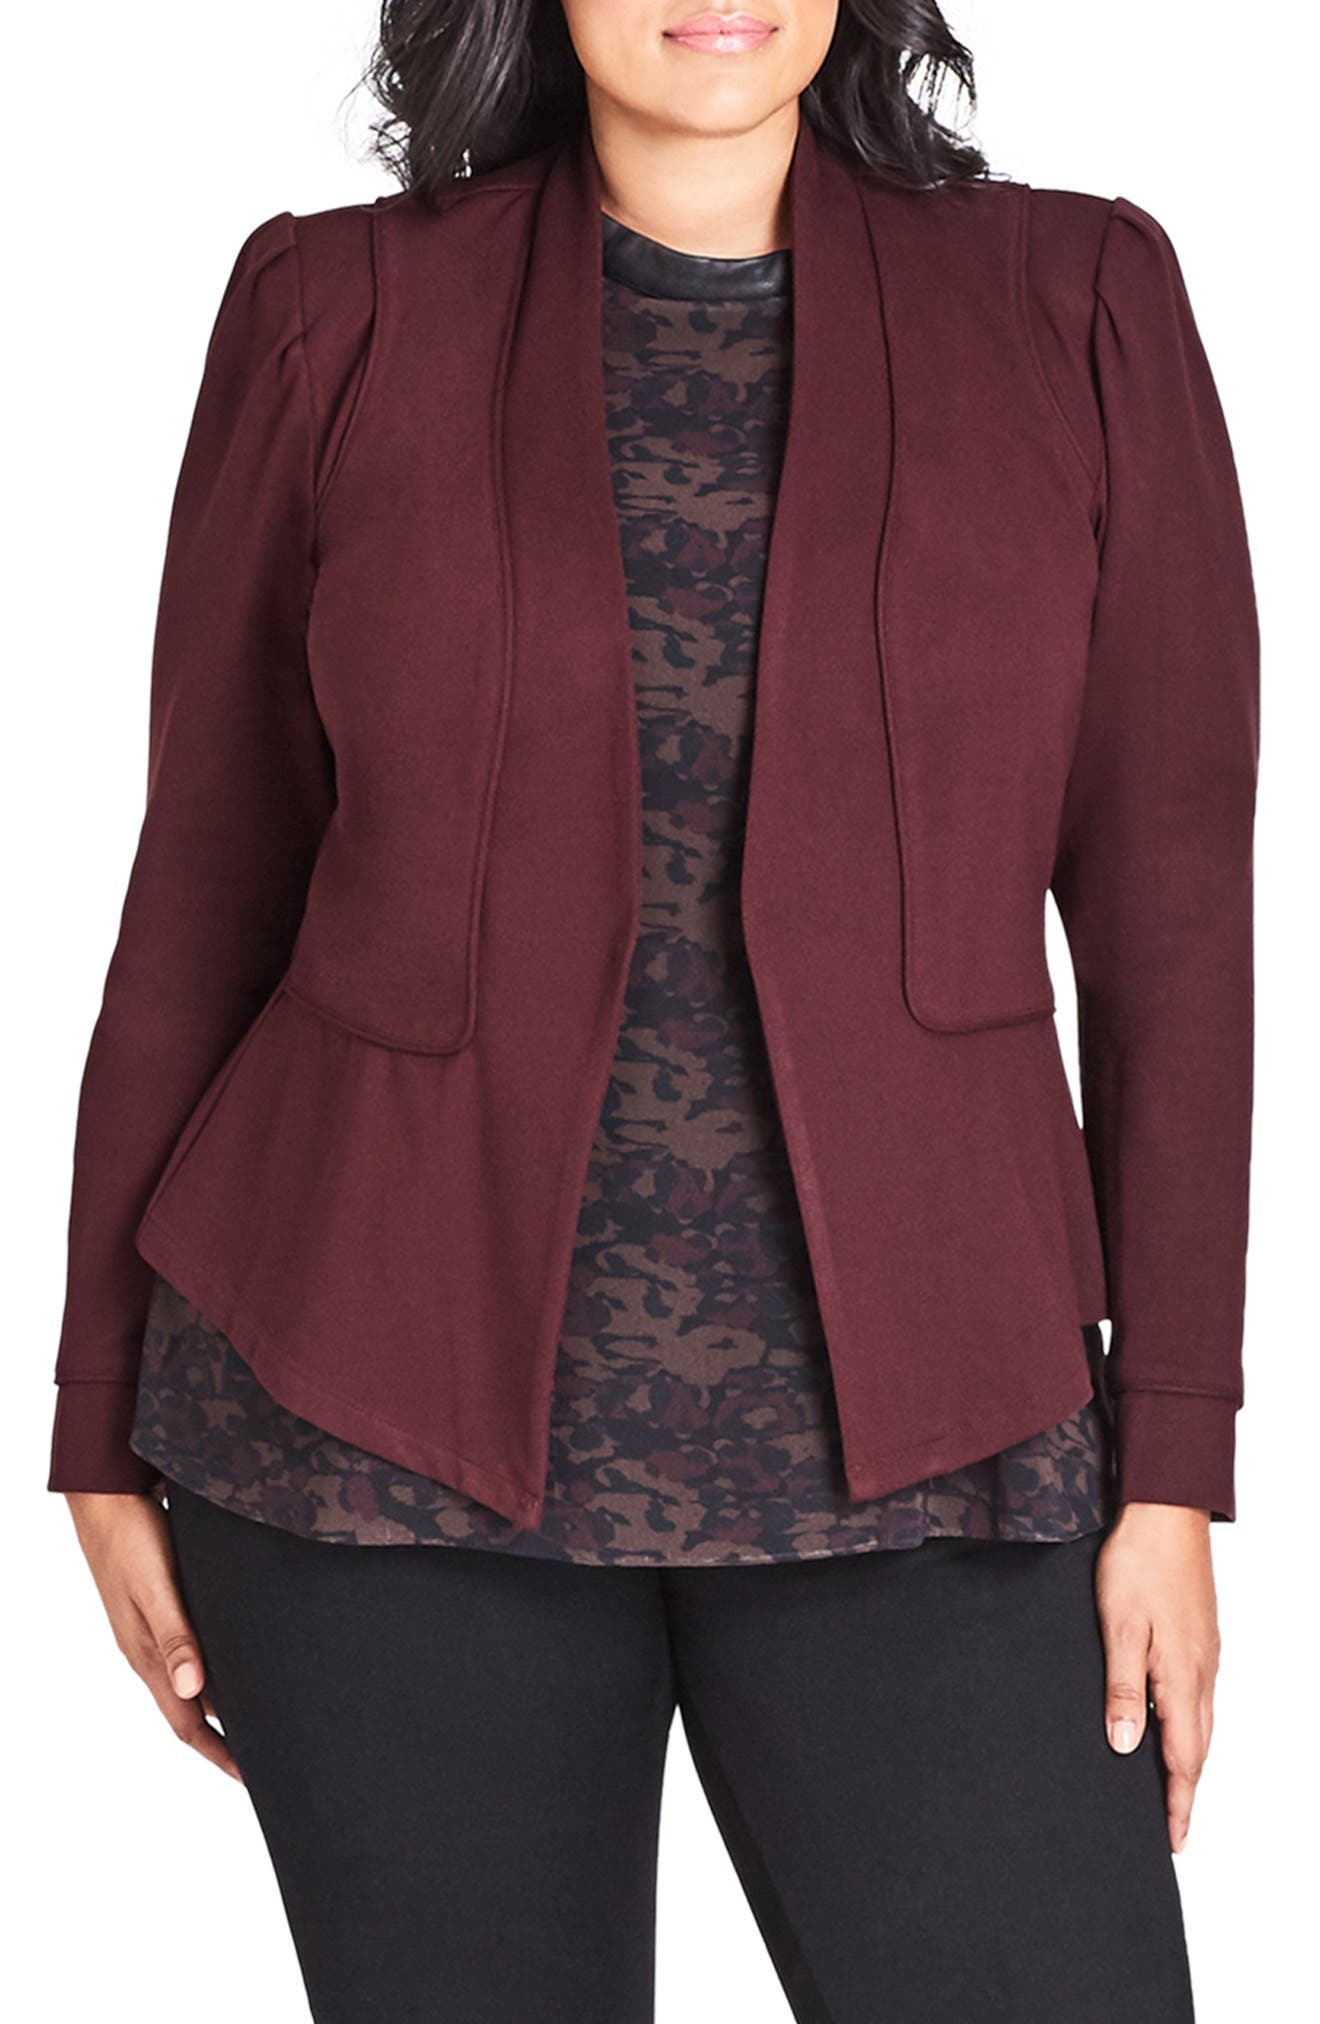 Piping Praise Jacket,                         Main,                         color, OX BLOOD